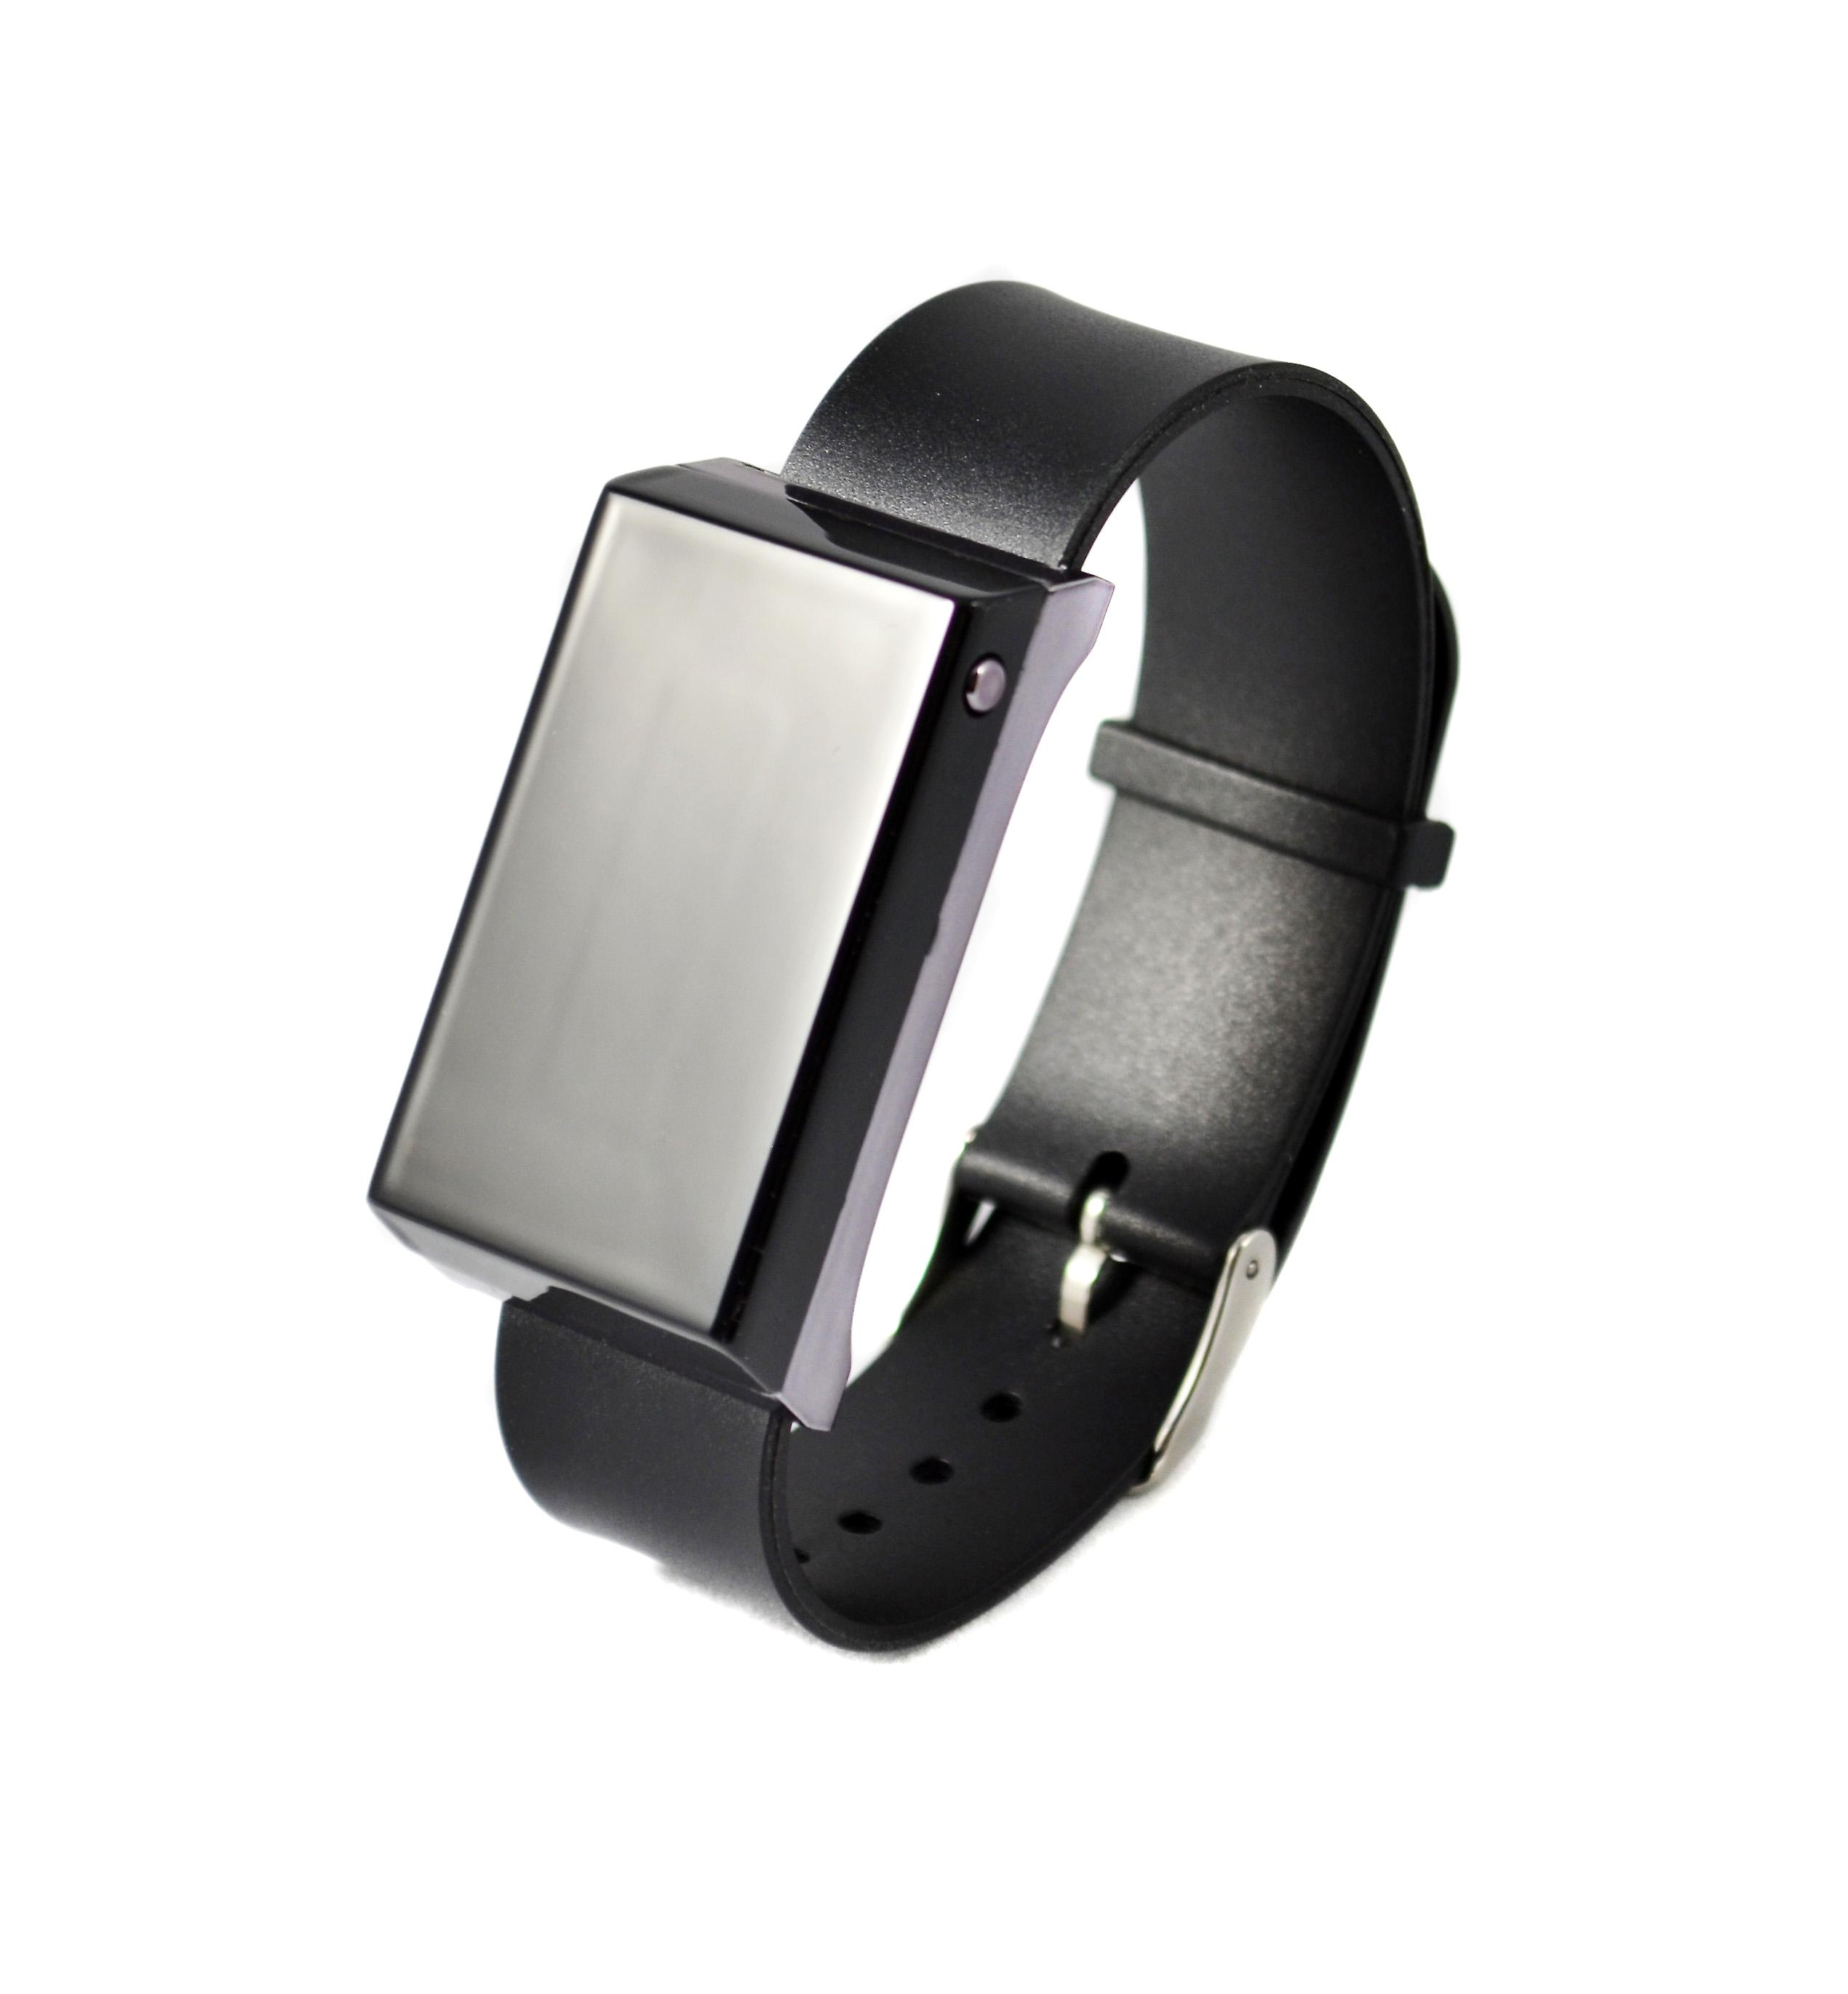 Waooh - Bluetooth Multifunction Watch